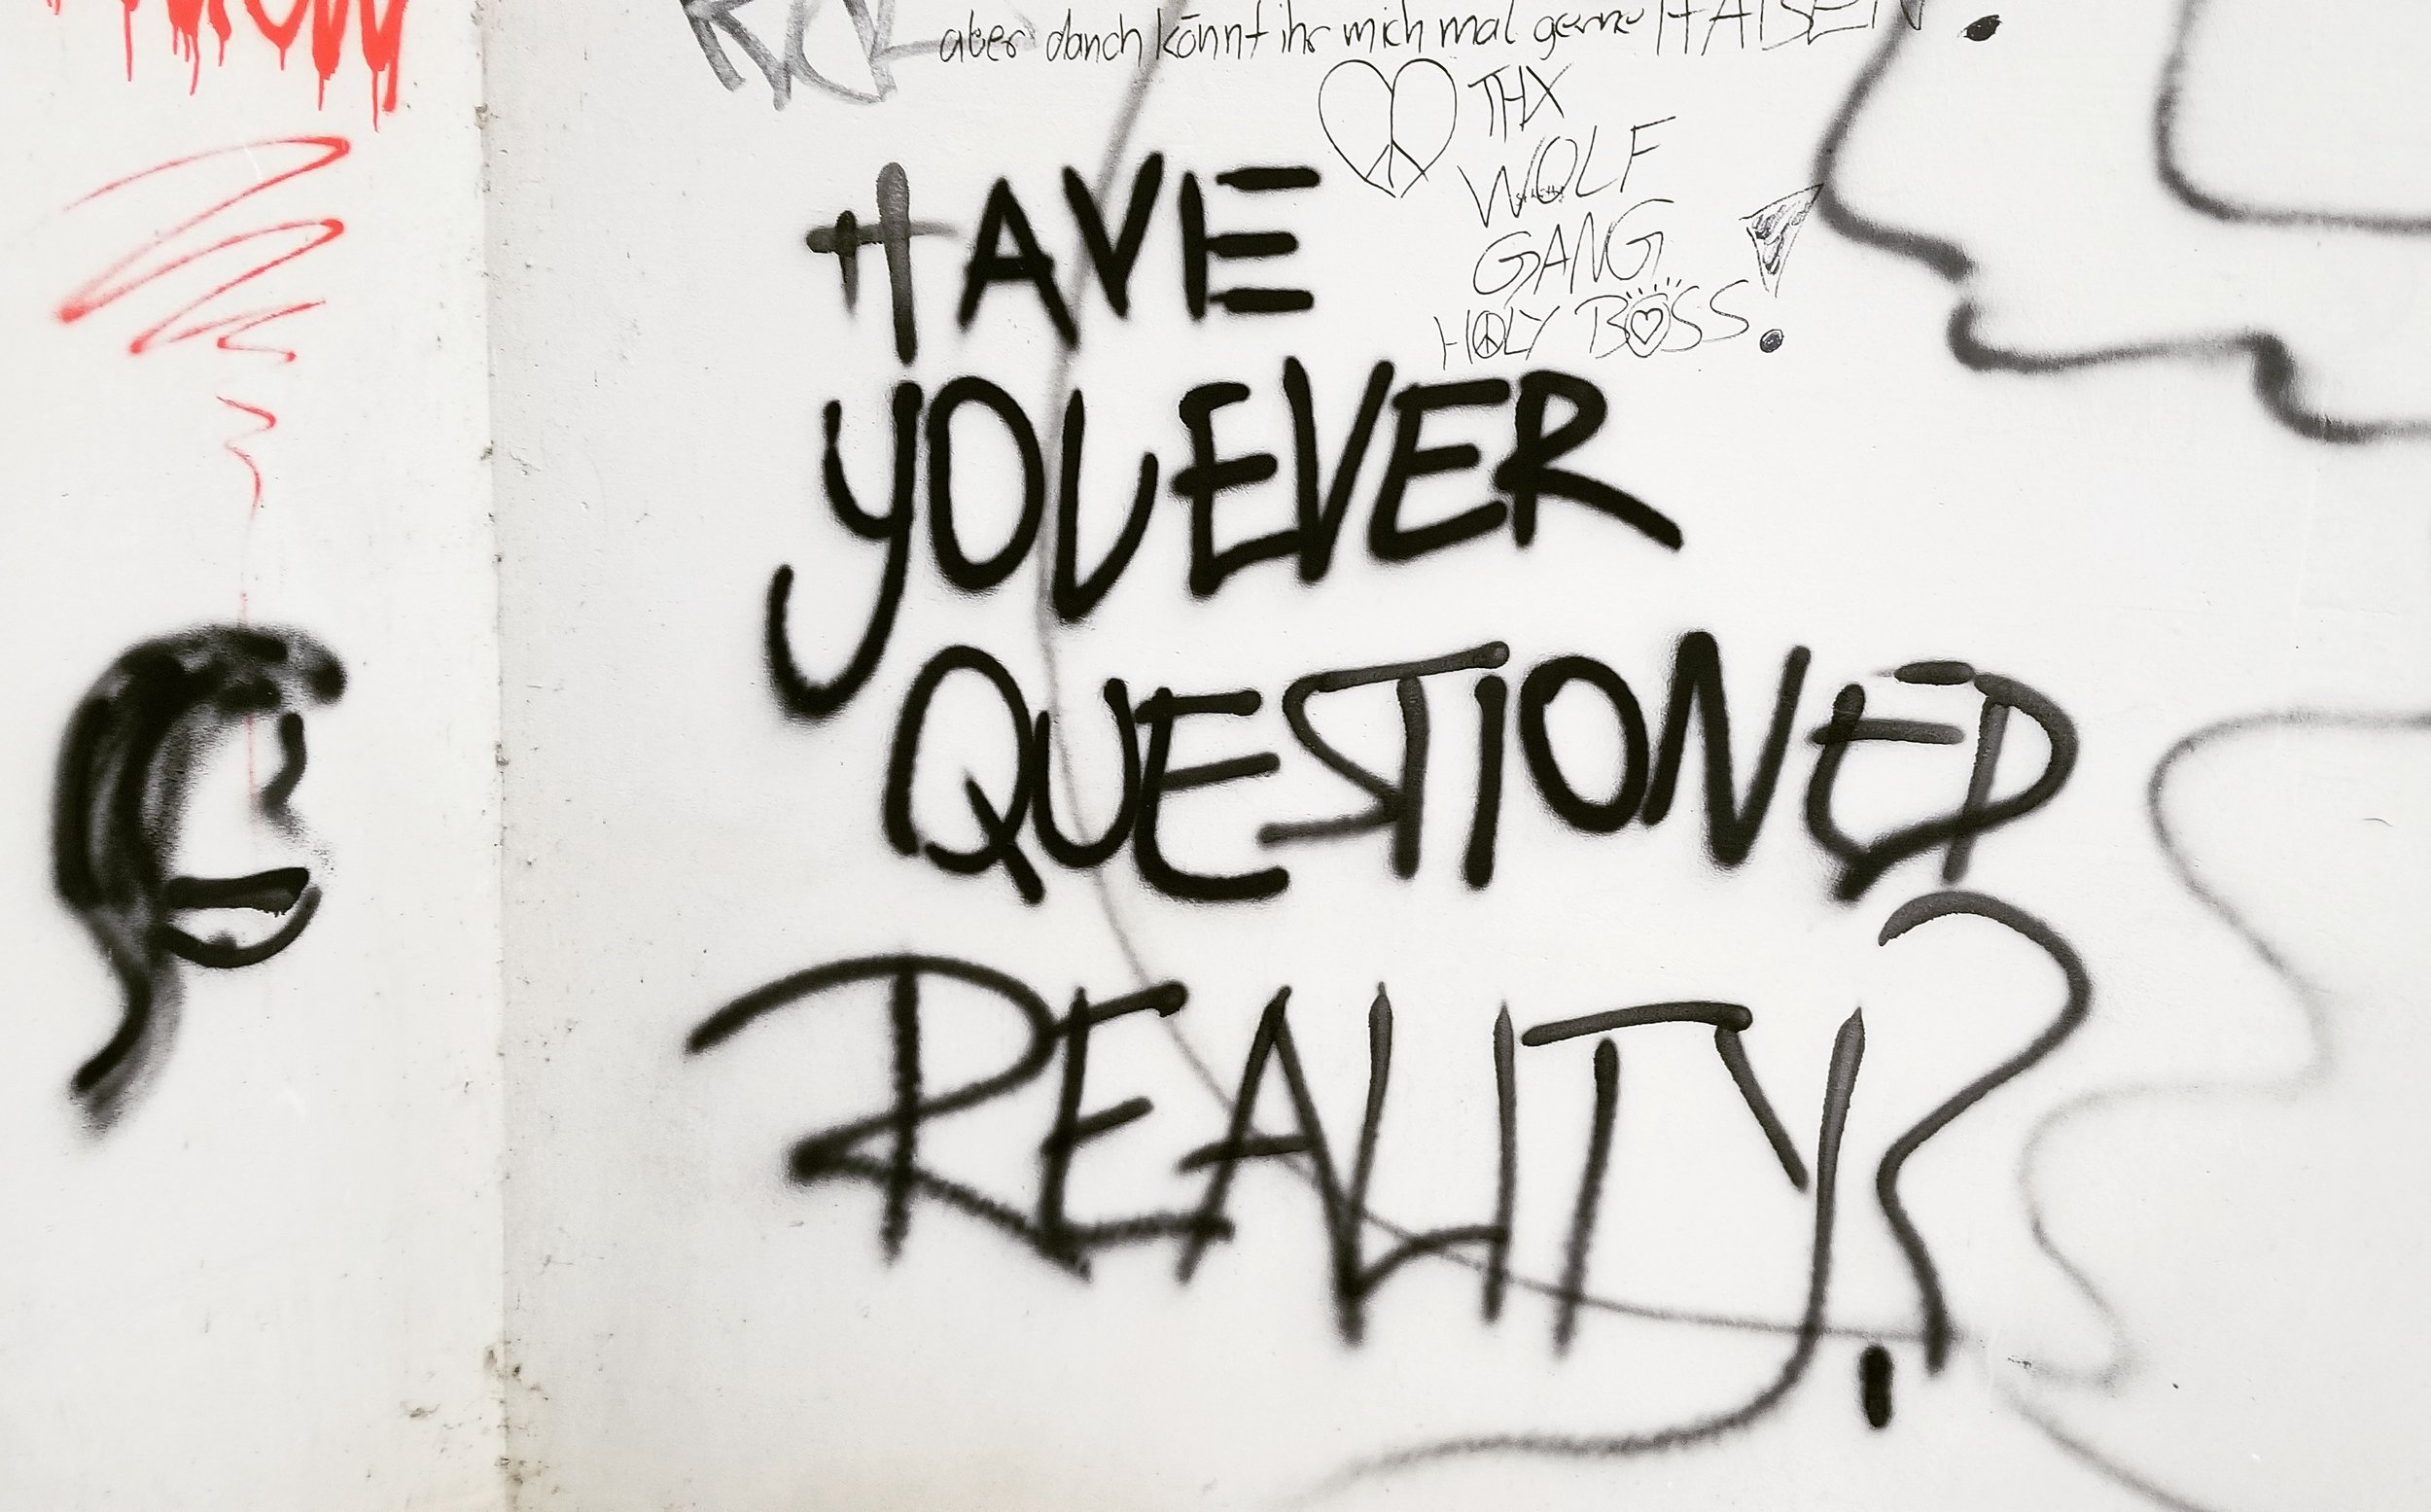 Have you ever questioned reality?